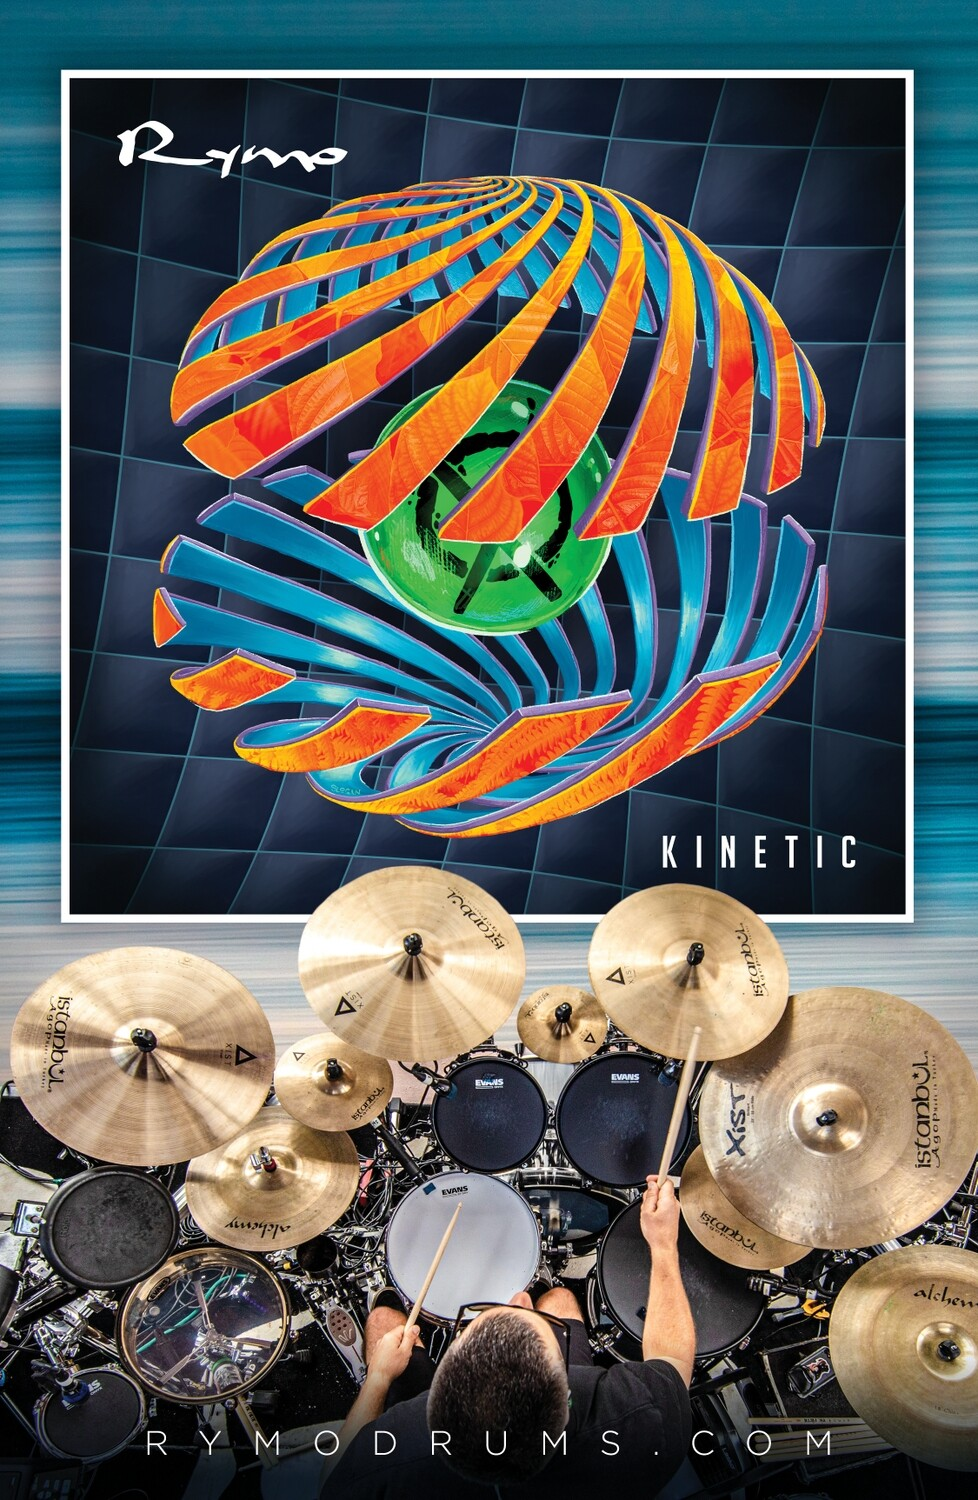 Limited Edition - Autographed Kinetic Poster